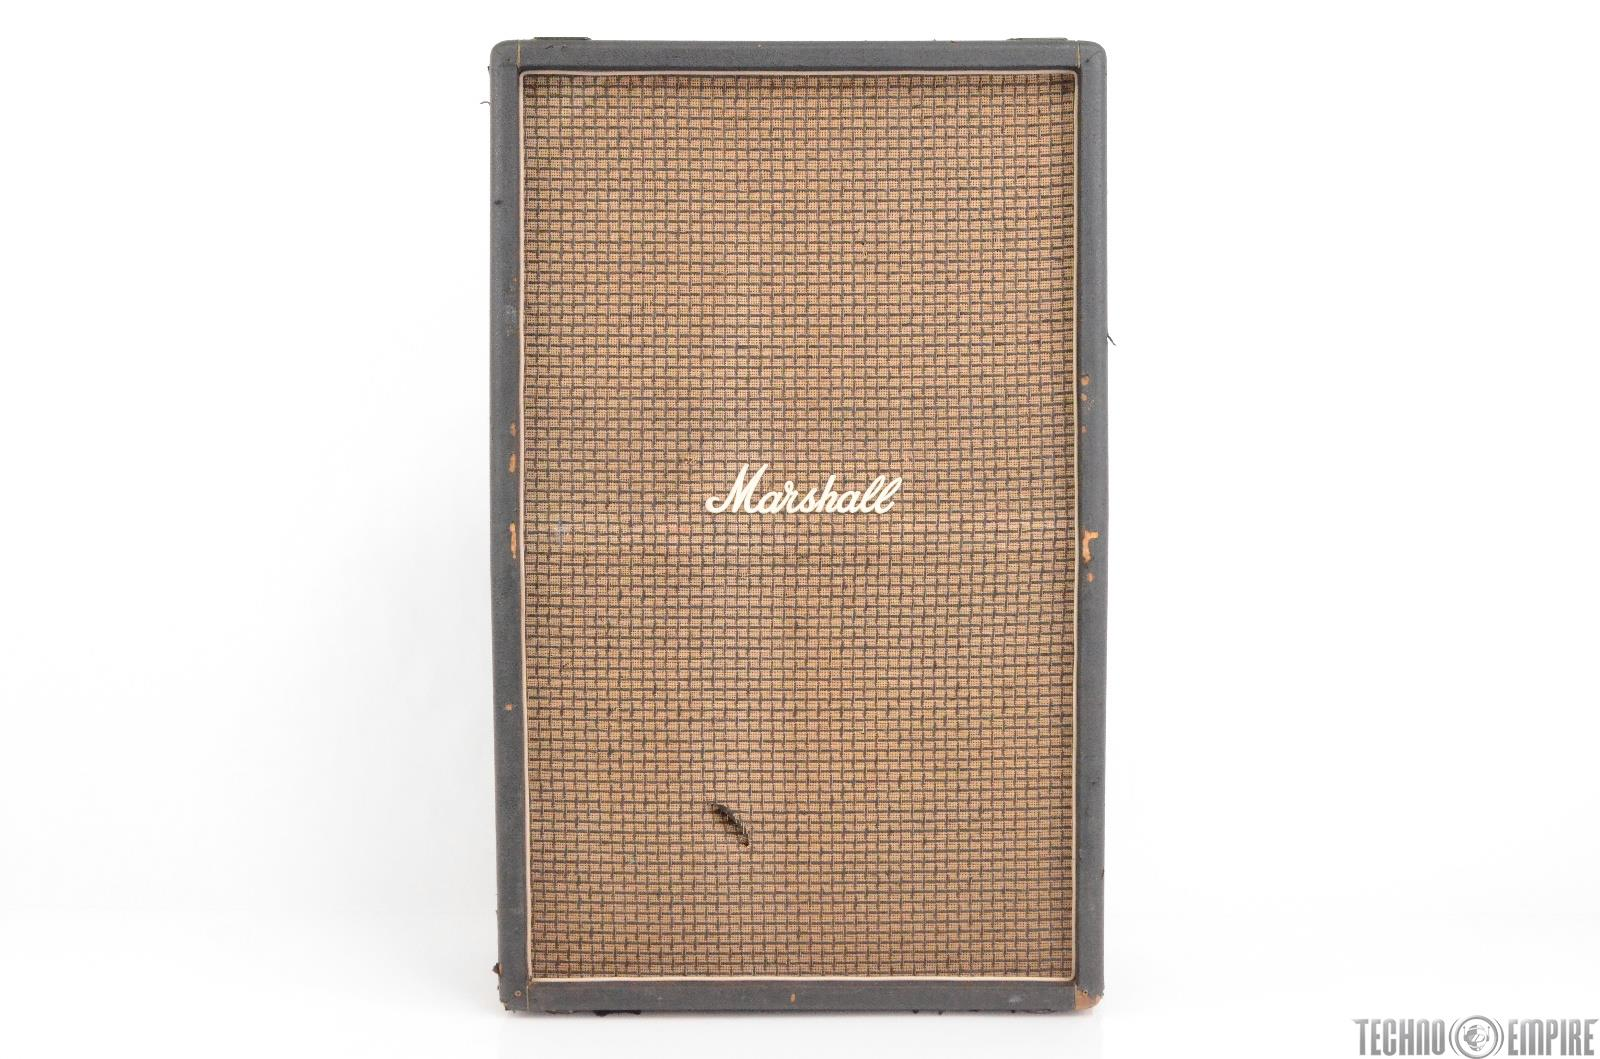 1970's Marshall 1990 8x10 Tall Cab Guitar Cabinet Owned by Matt Hyde #30102